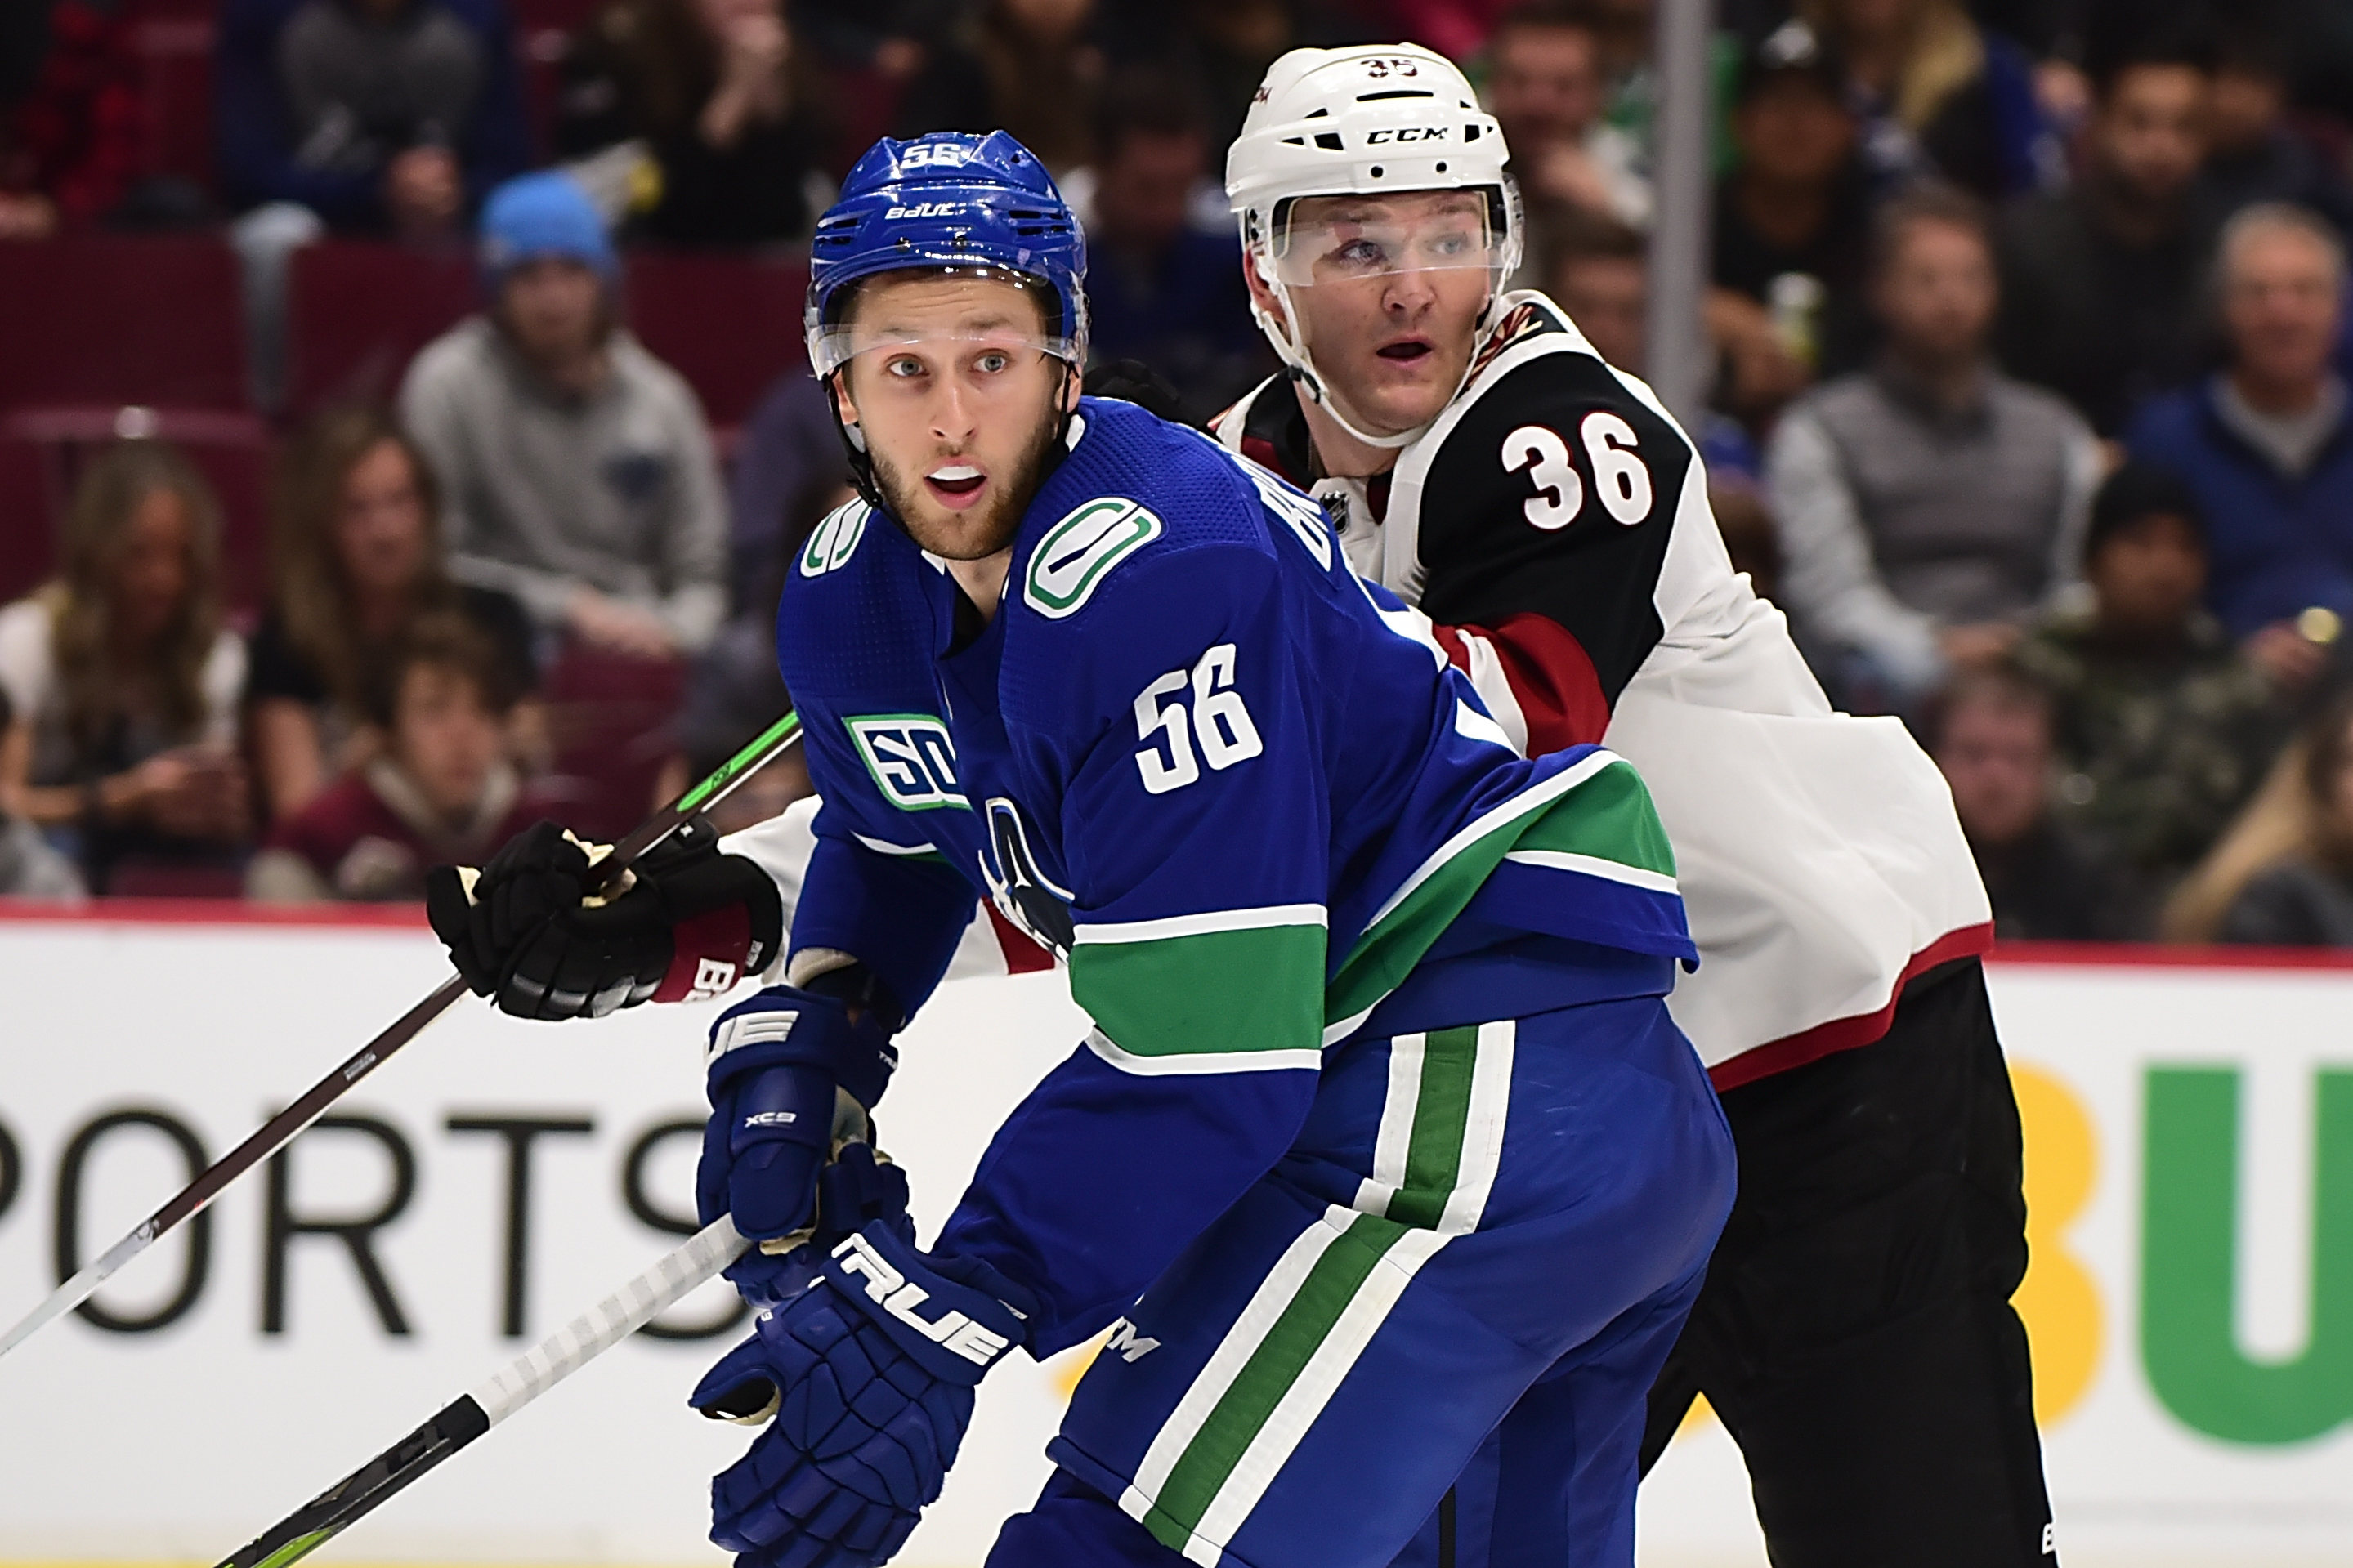 Seven Minutes With Guillaume Brisebois of the Utica Comets